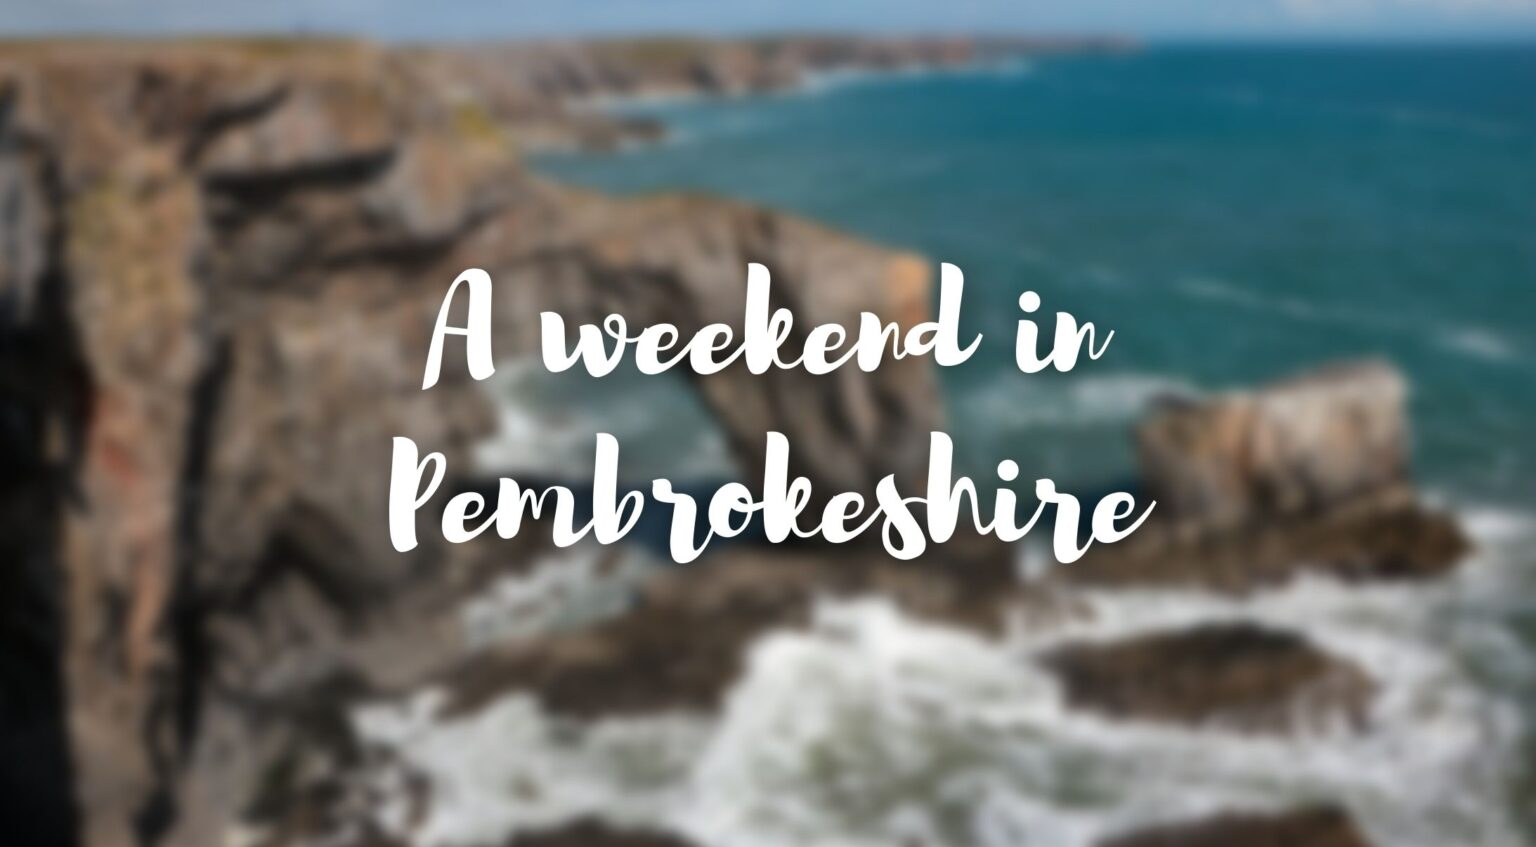 Cover image for a weekend travel itinerary in Pembrokeshire, Wales